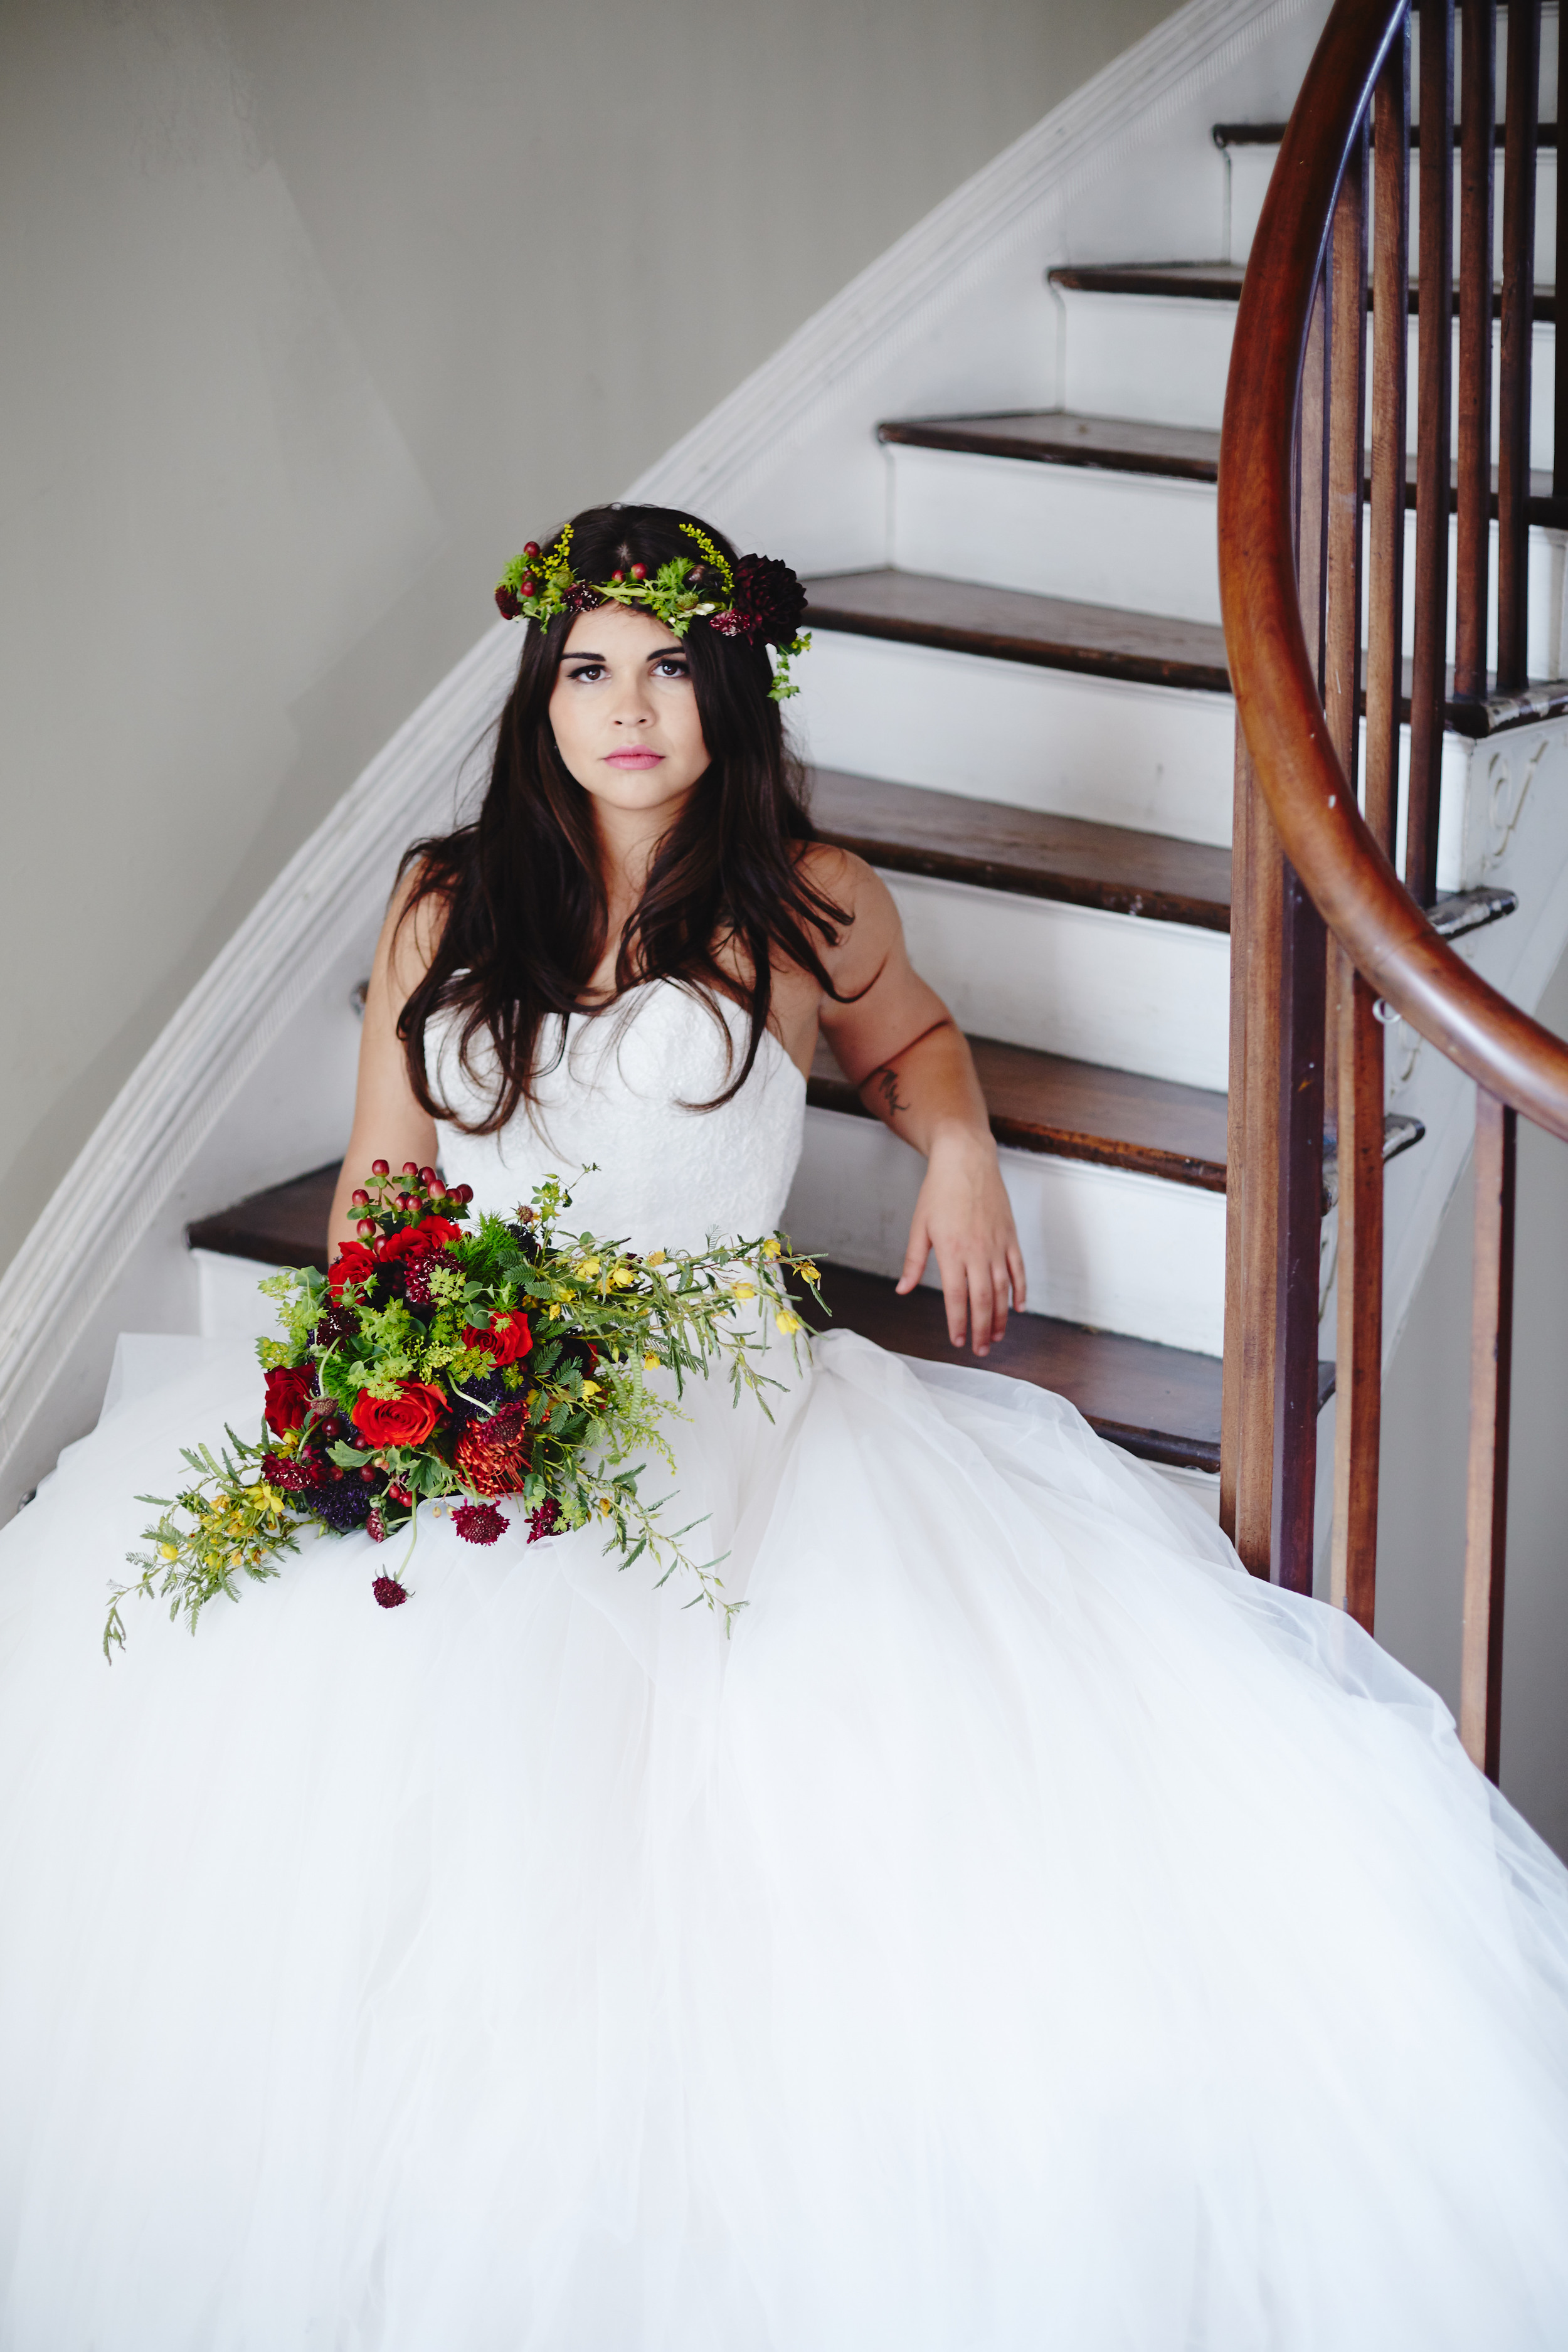 Styled_Session_Cherie_Bridal_Portraits_House_of_the_Bride 18.jpg